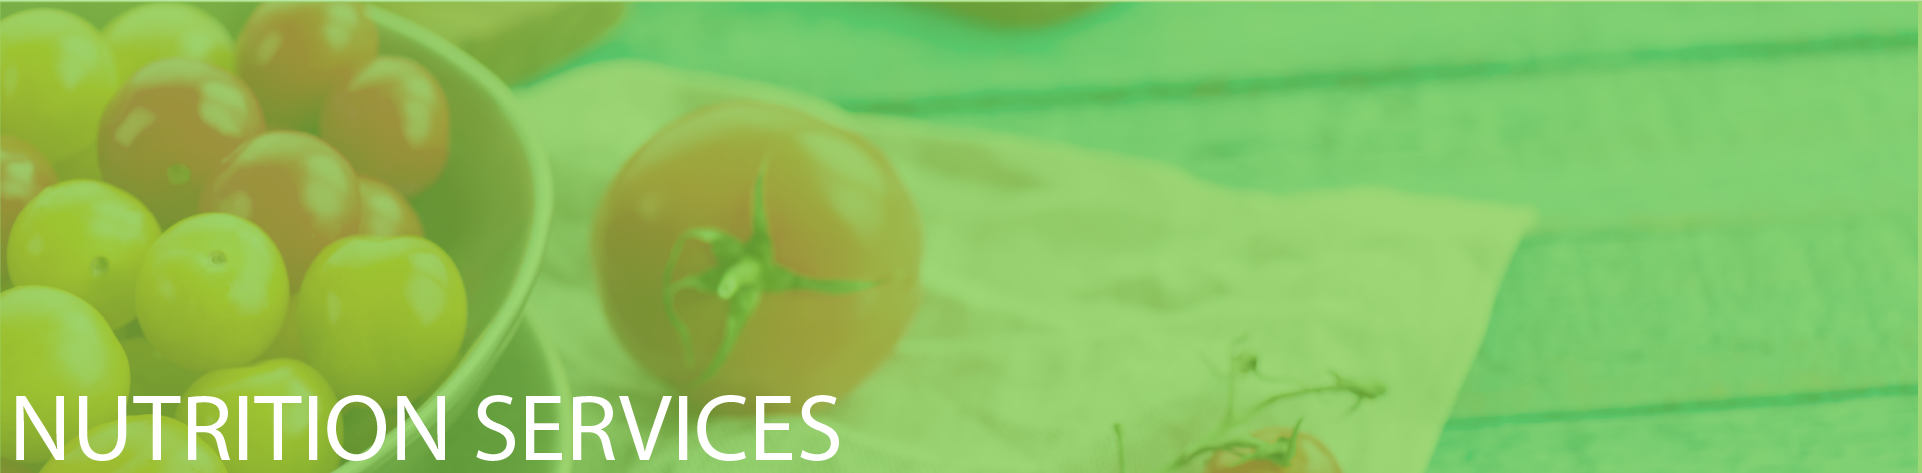 Nutrition Services Header Image